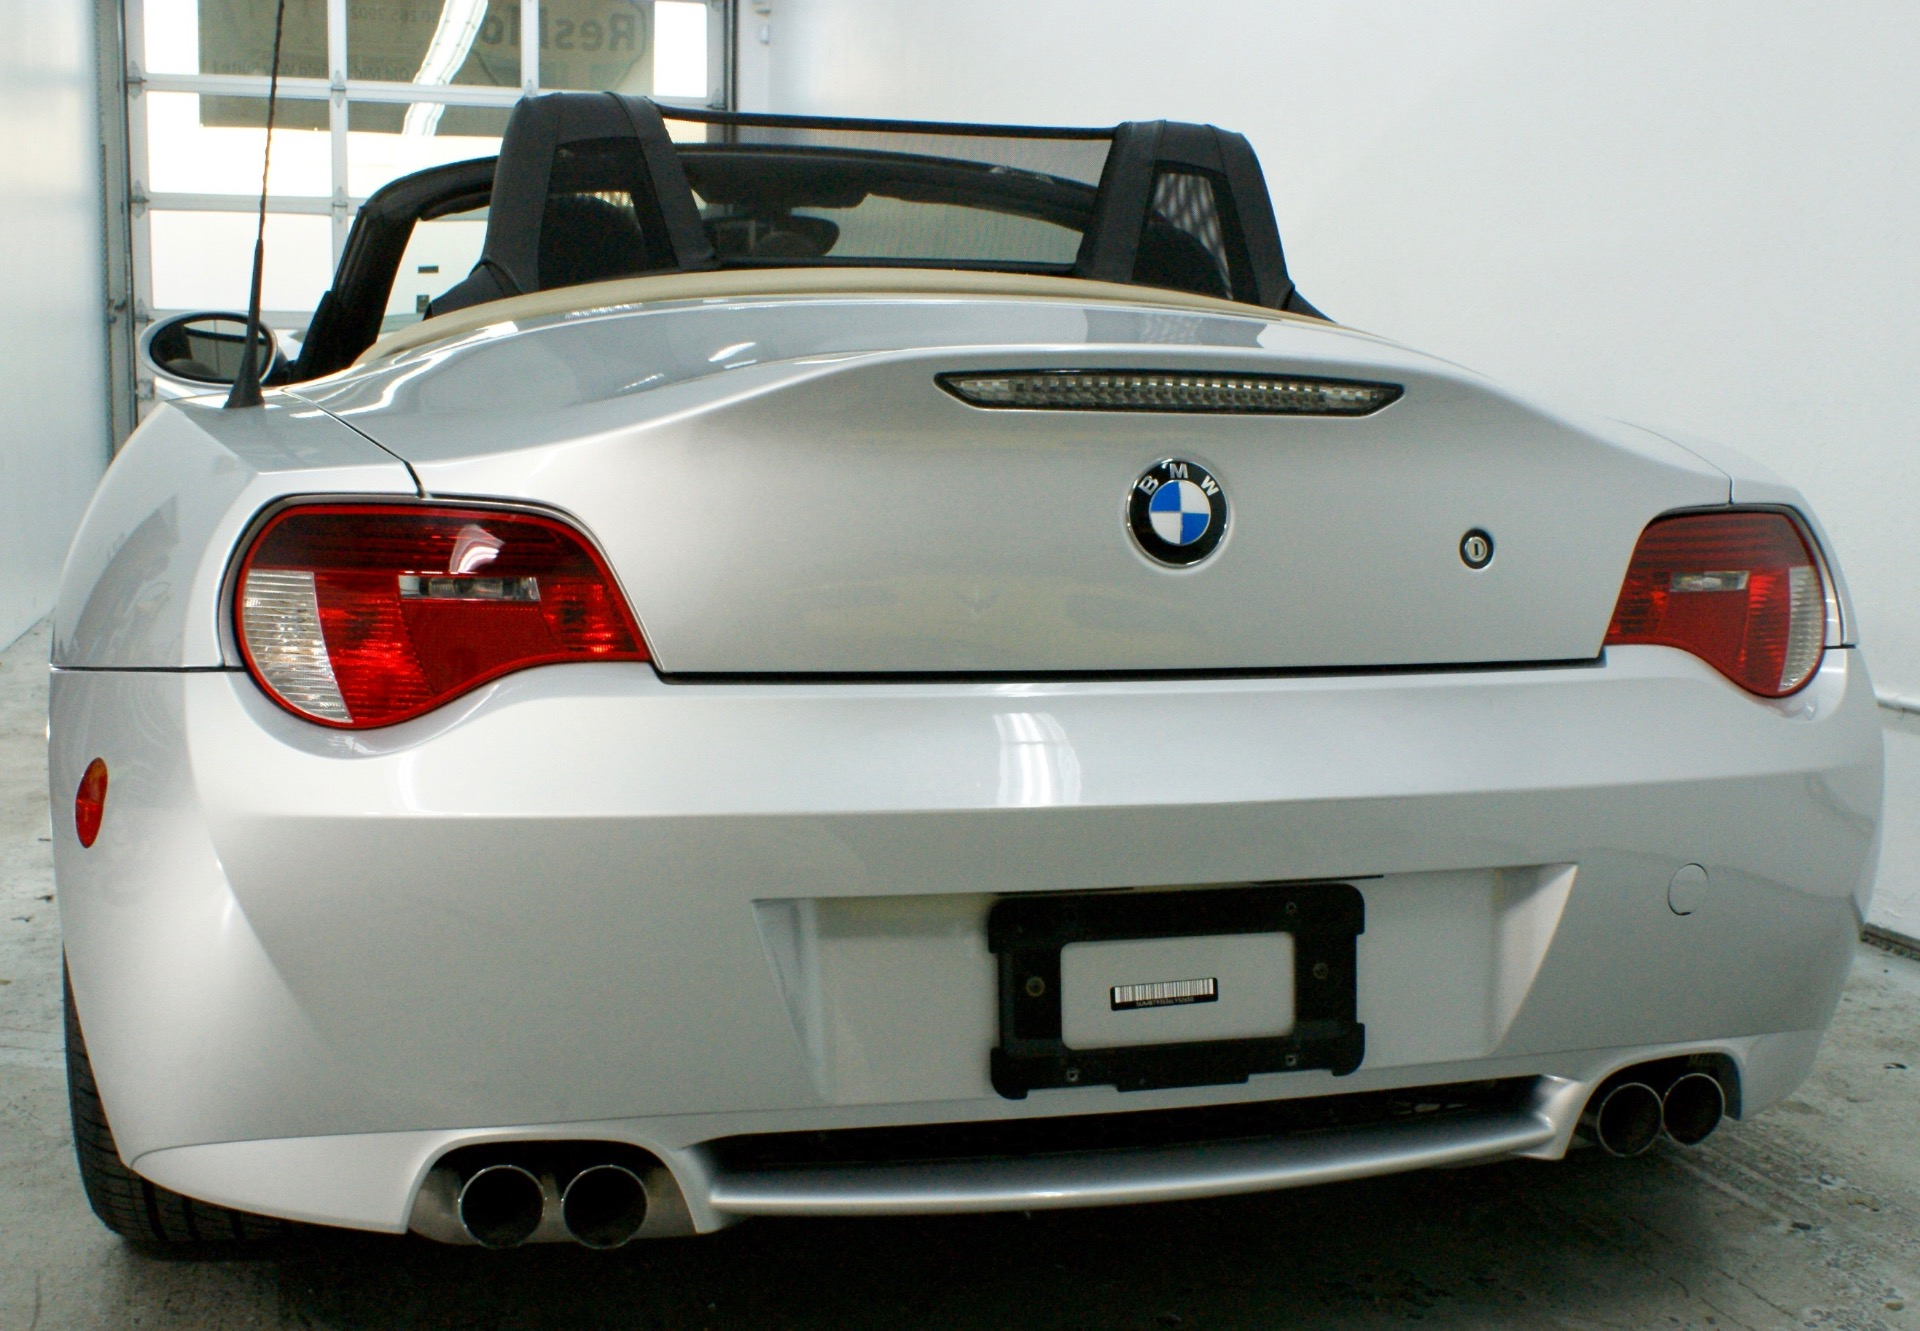 2006 Bmw Z4 M Stock 0021 For Sale Near Mountain View Ca